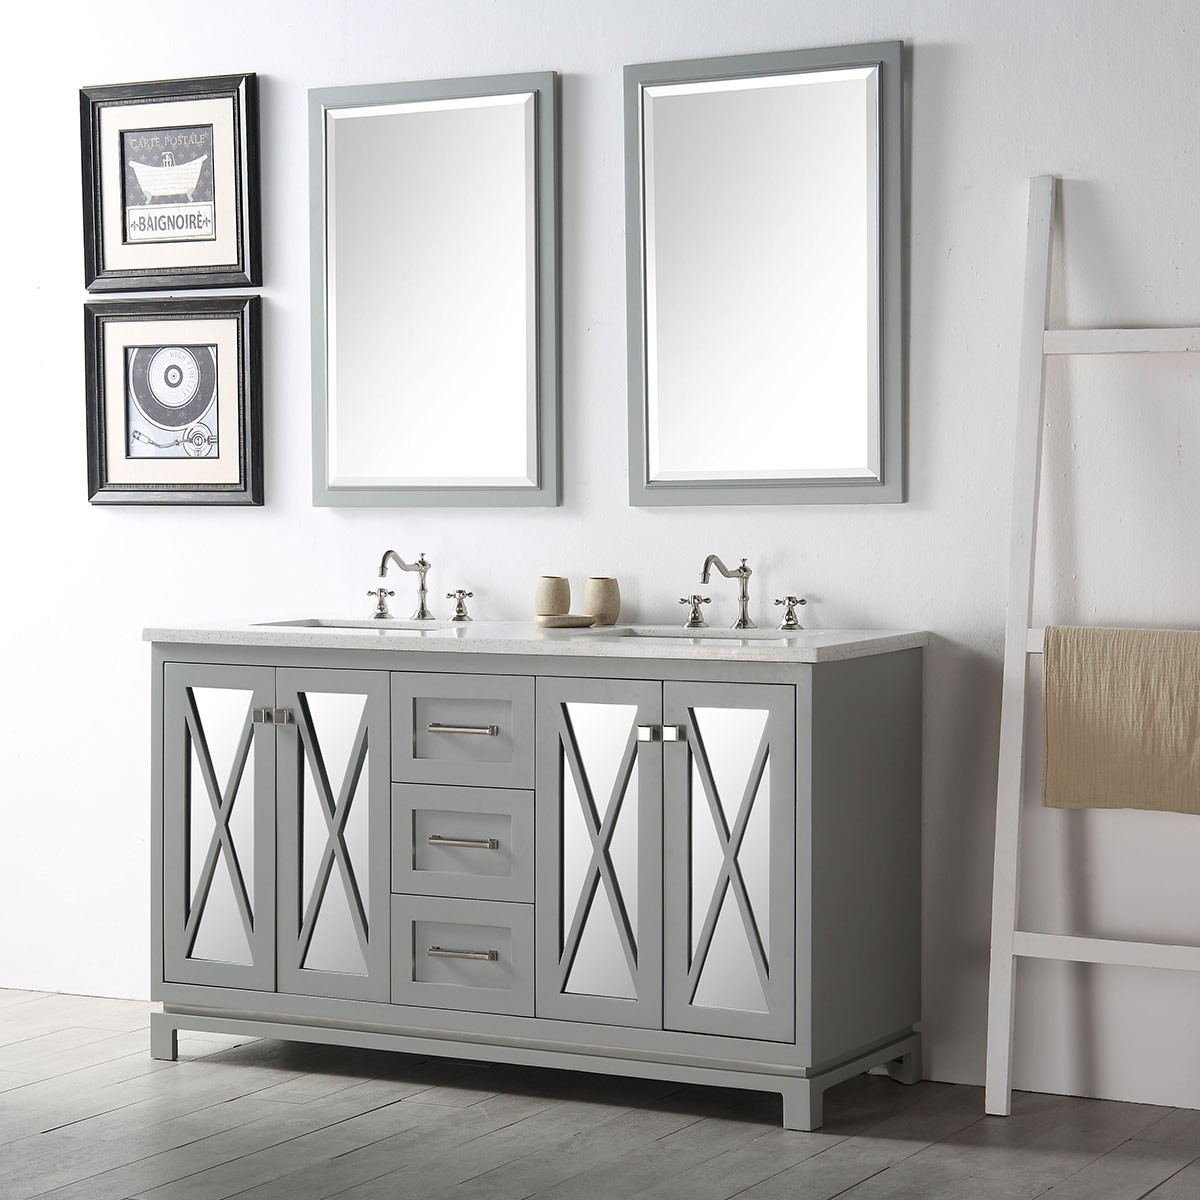 60 in bathroom vanity set without mirror dk 6460 cg 60 in bathroom vanity set without mirror dk 6460 cg geotapseo Image collections